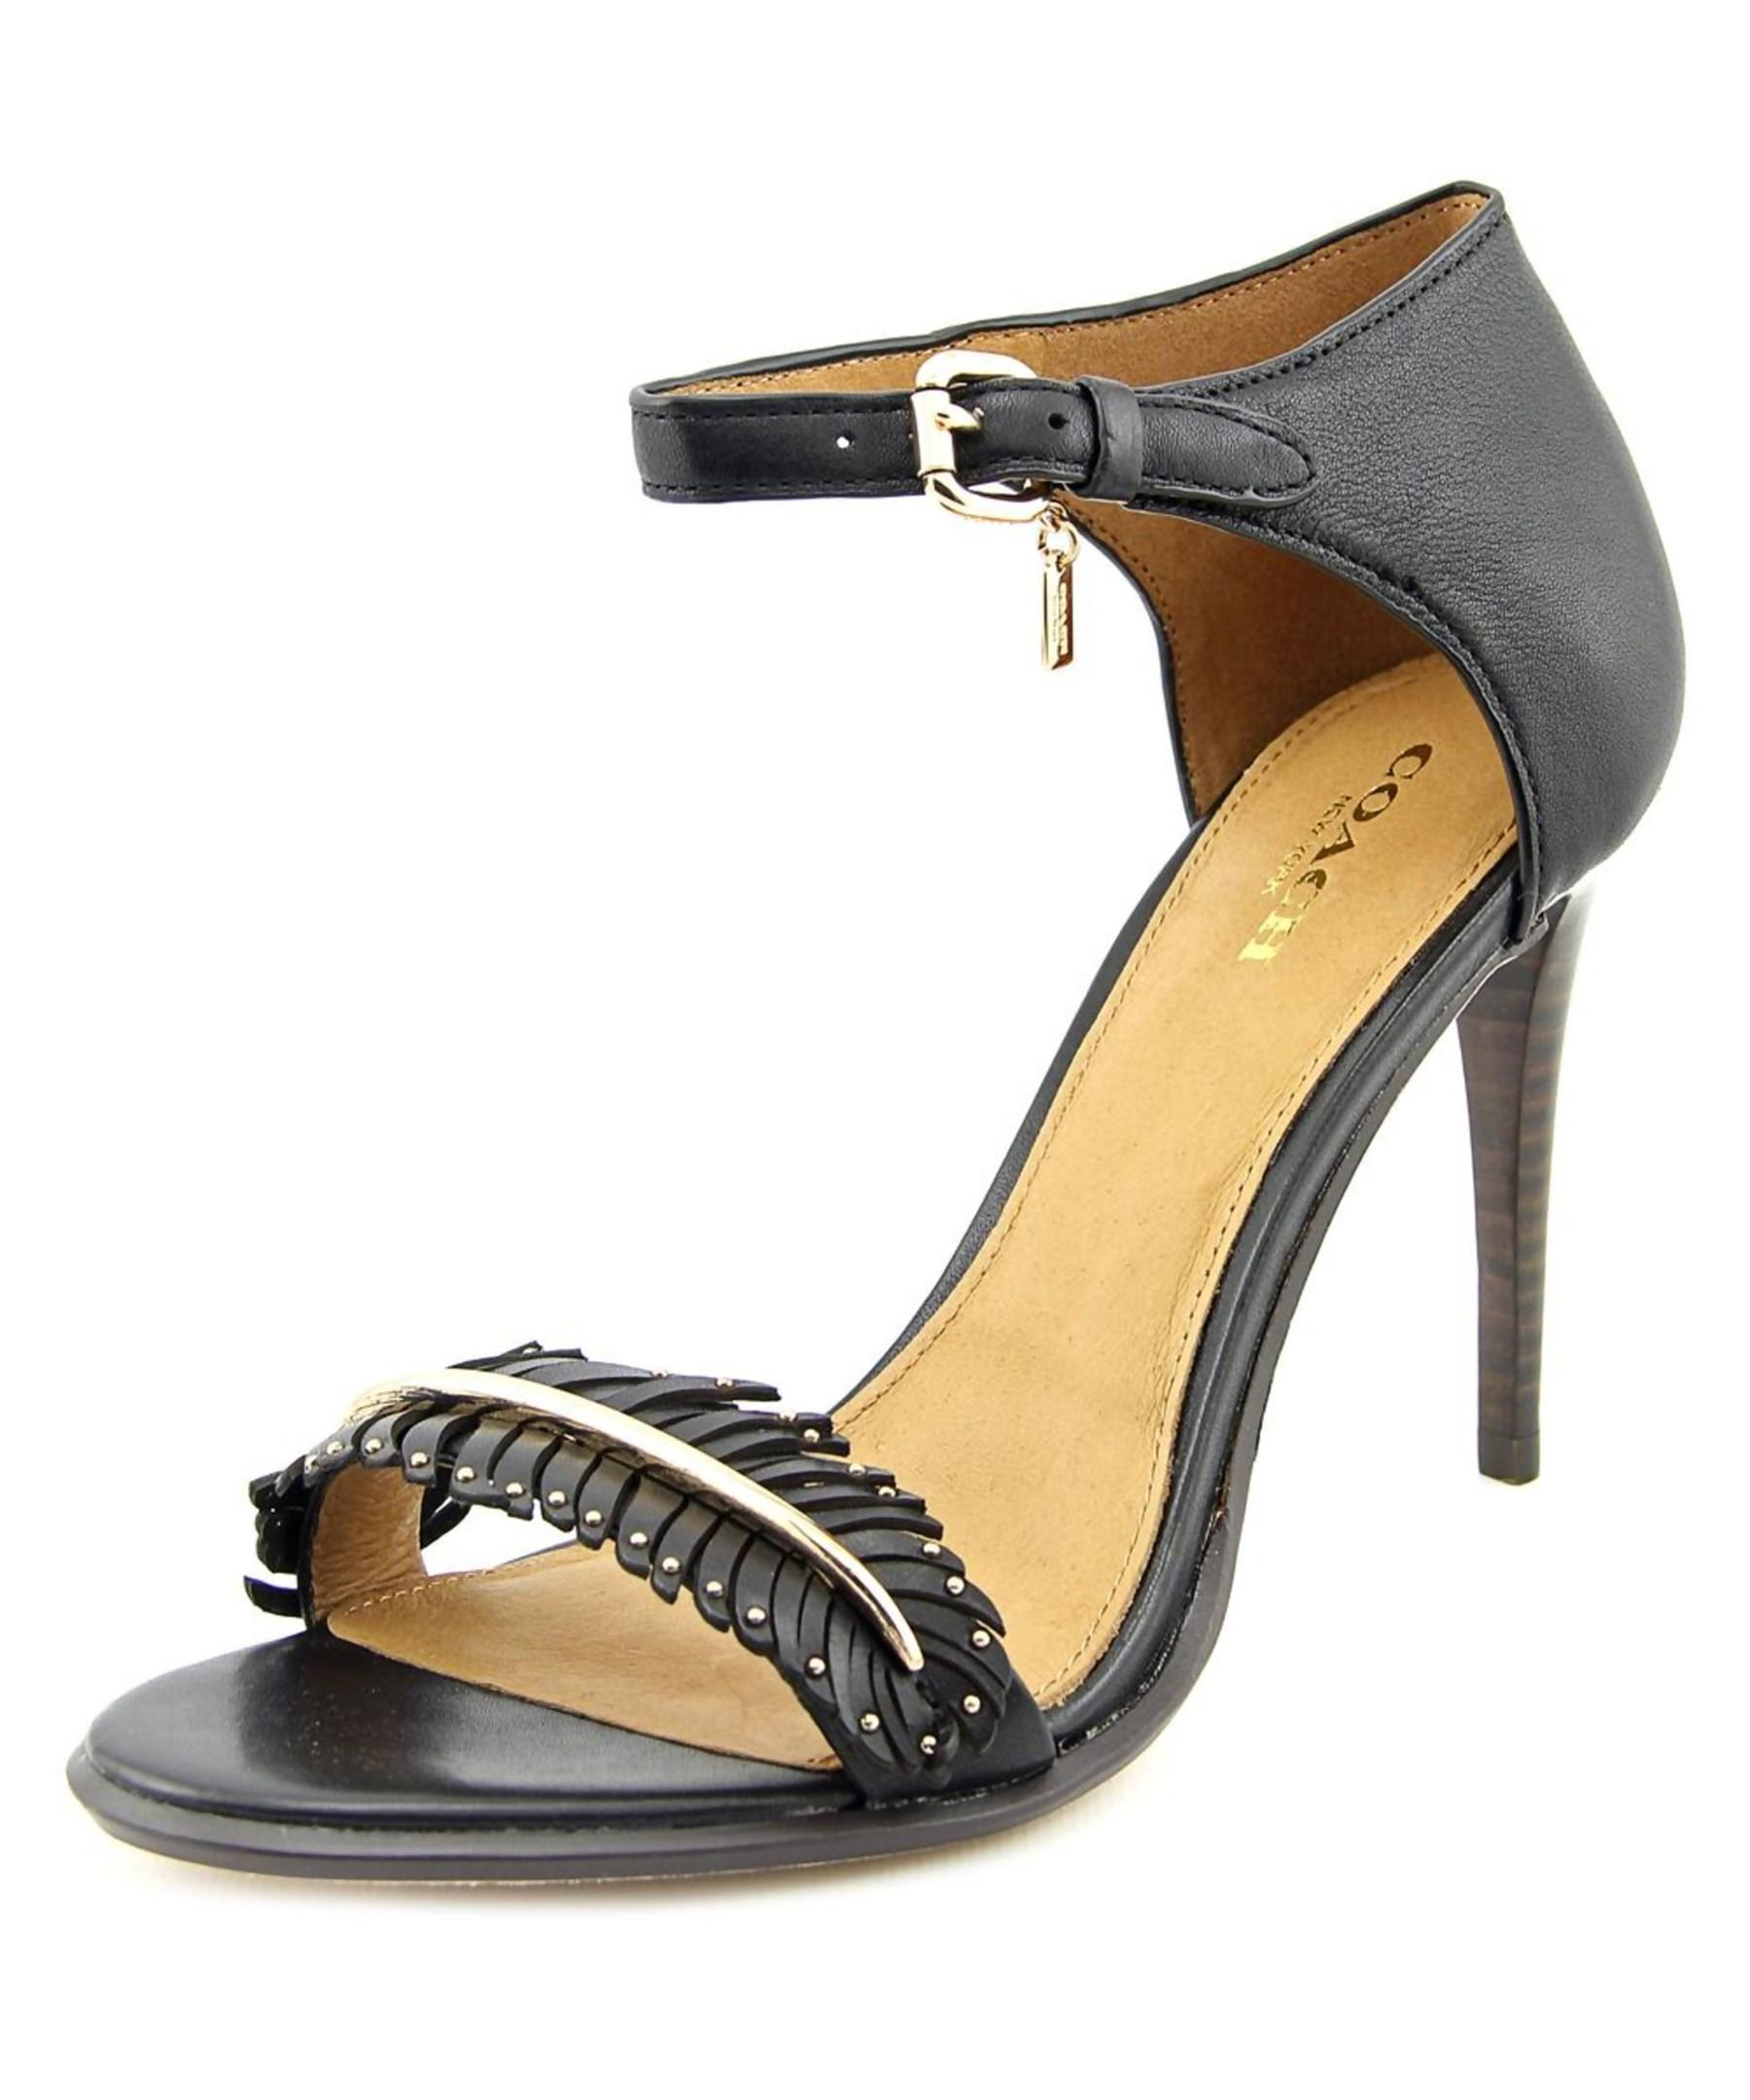 Coach Isabella Open-toe Leather Heels in Black | Lyst